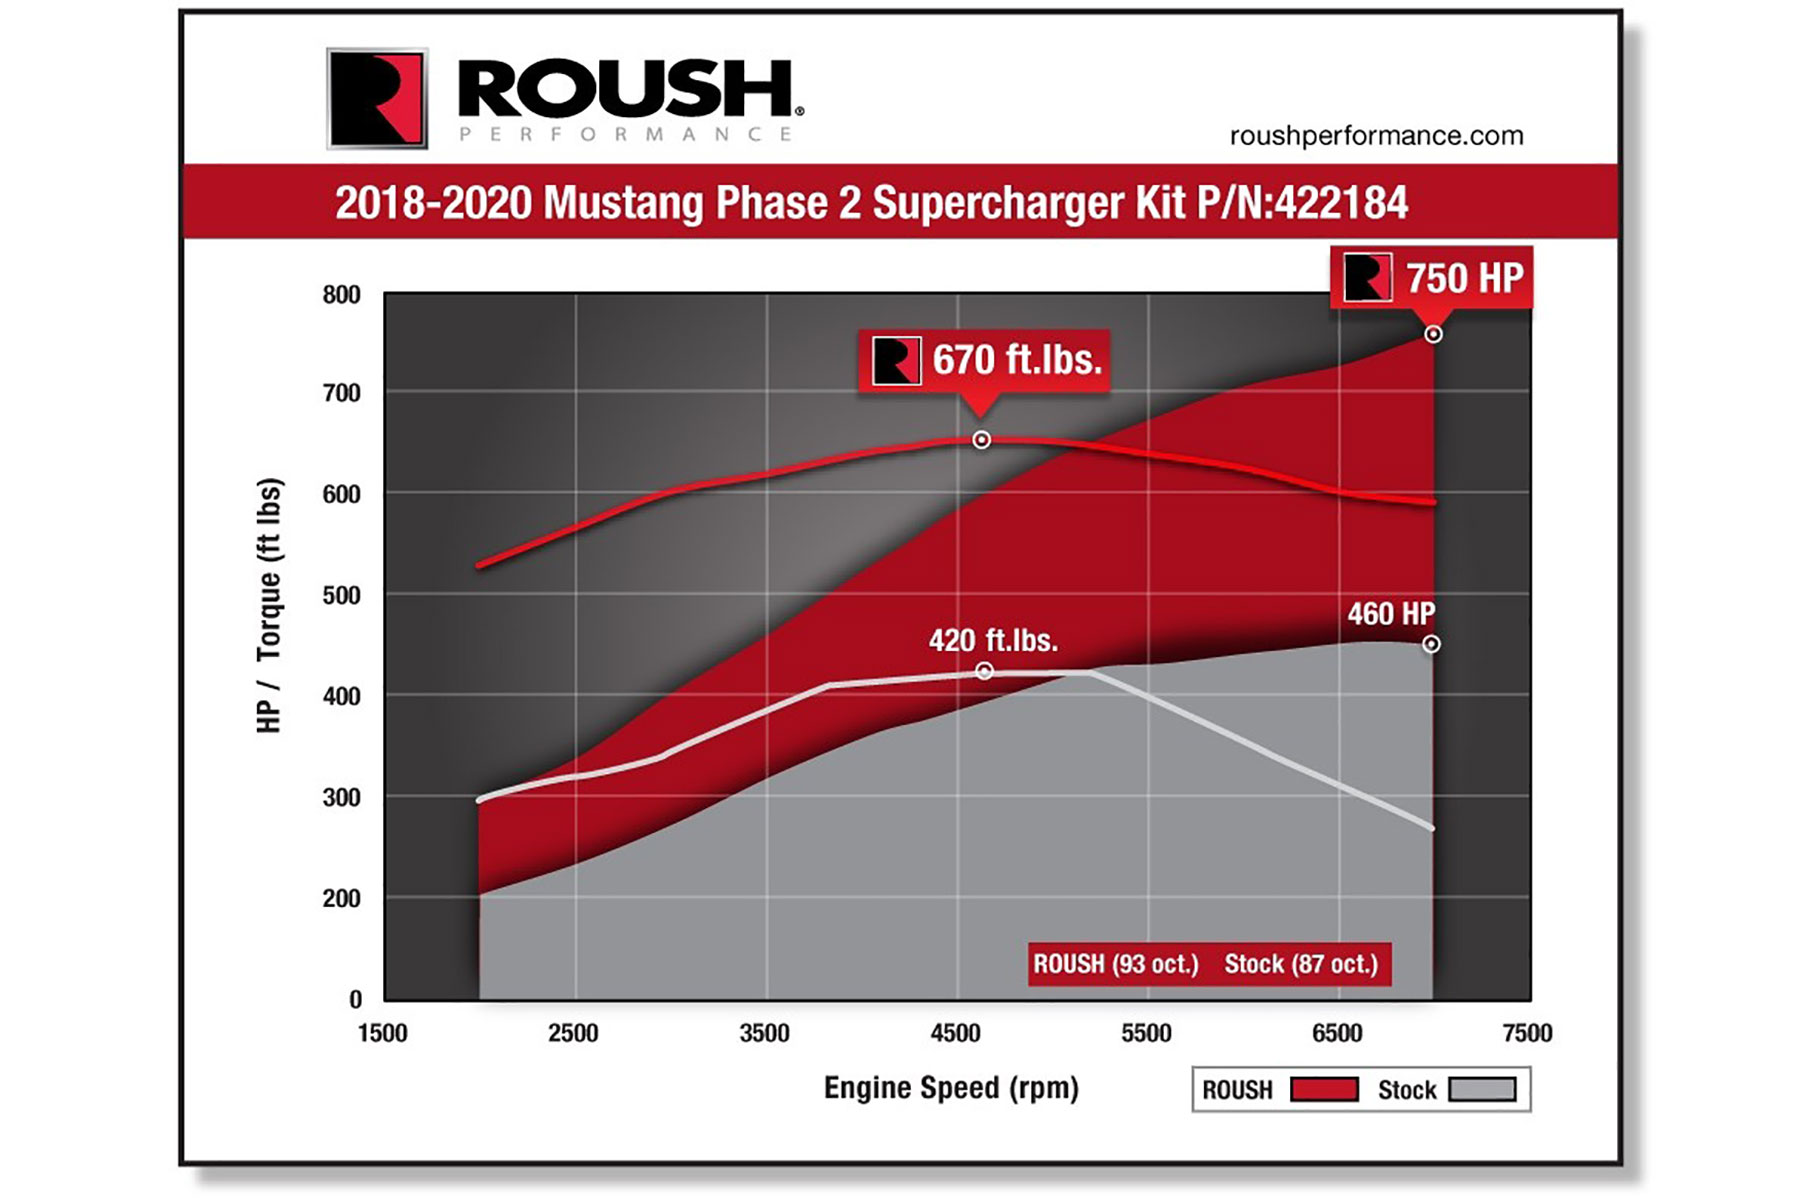 roush-ford-performance-supercharger-04